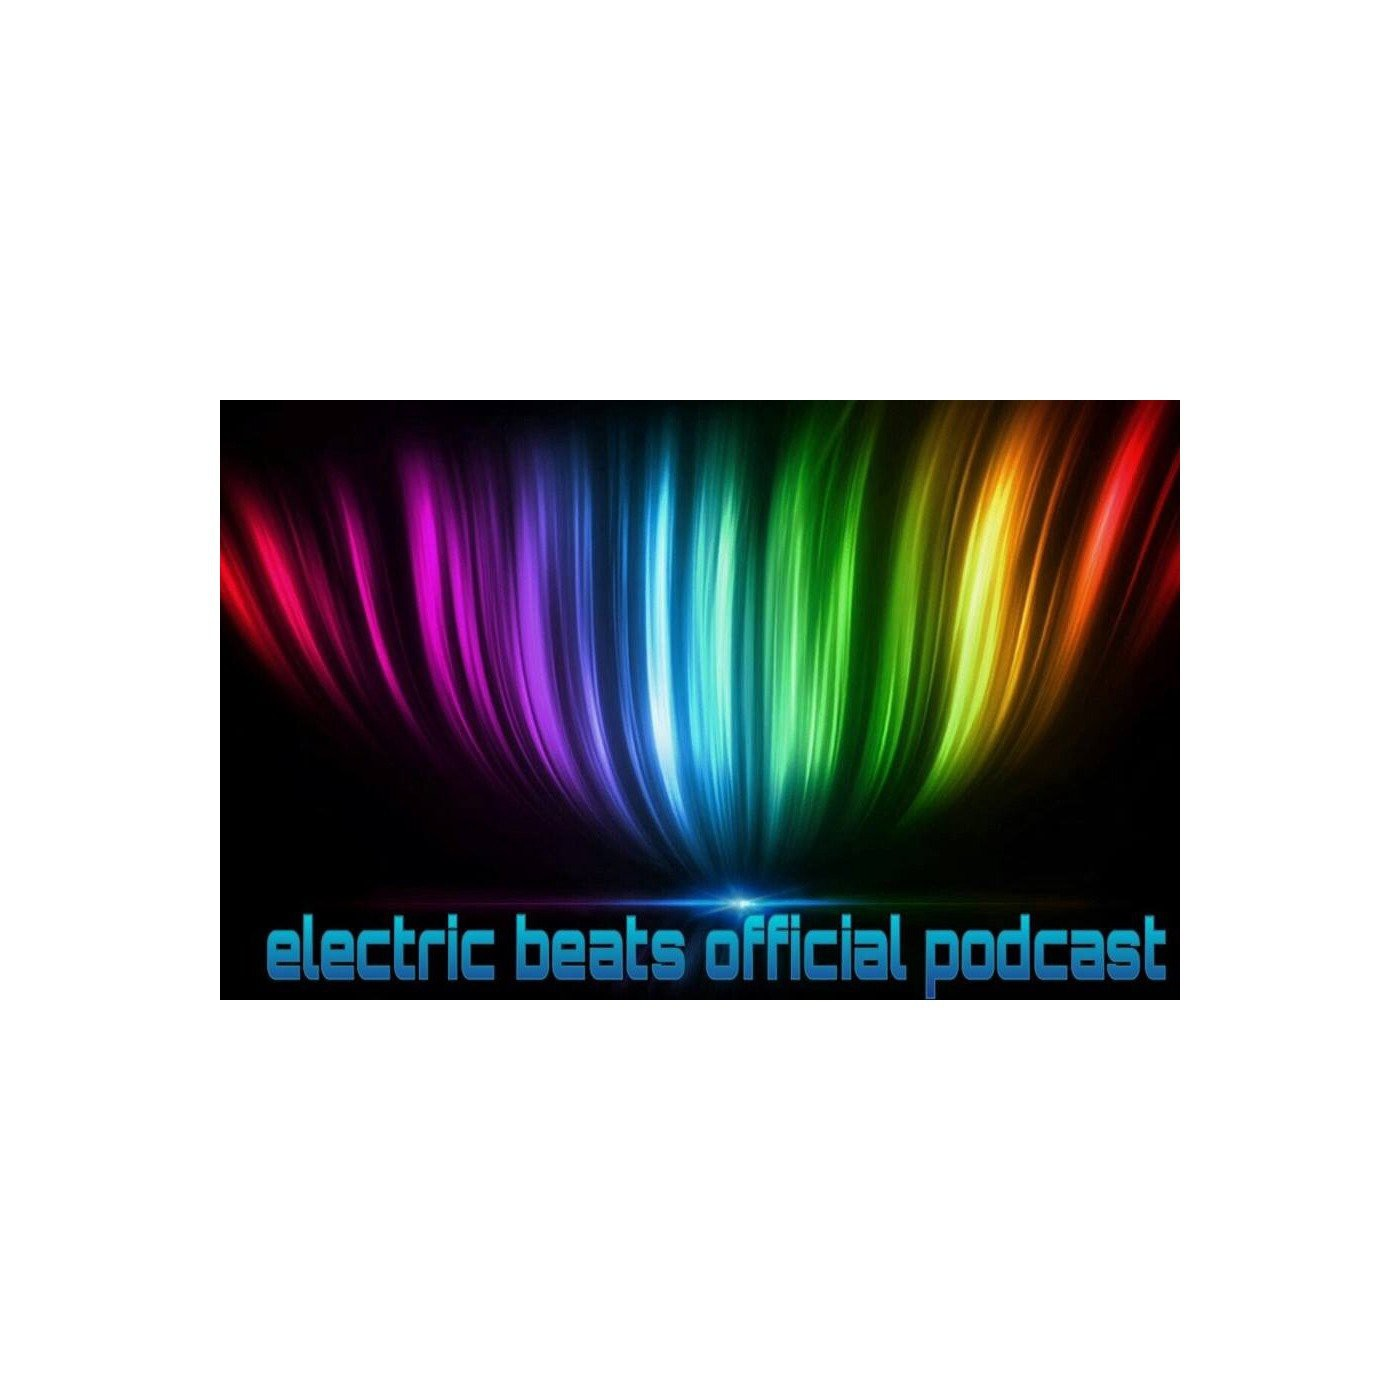 <![CDATA[electric beats official podcast]]>